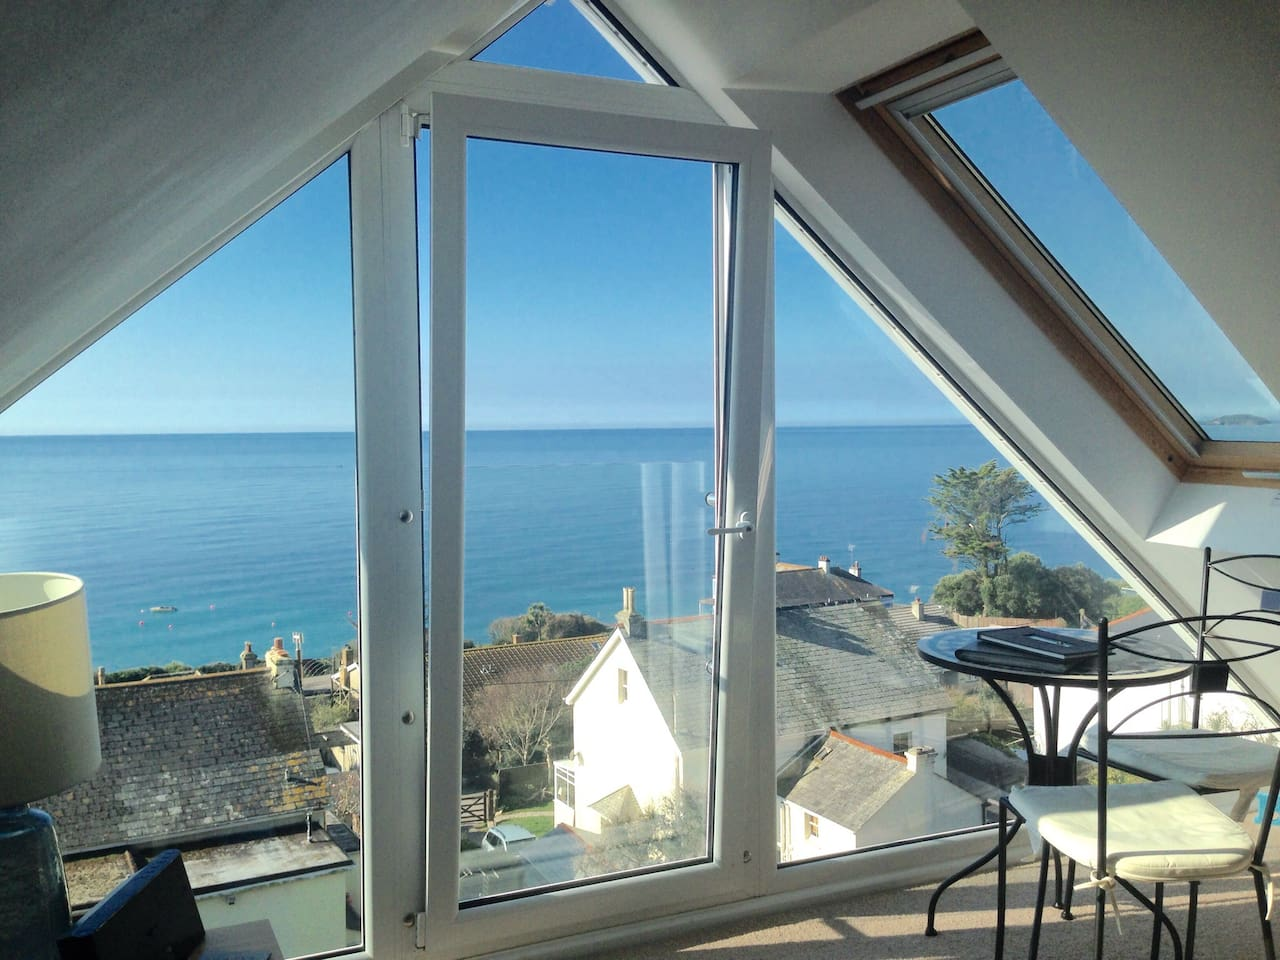 A stunning panoramic view of the sea and coastline from east to west through the south facing window.